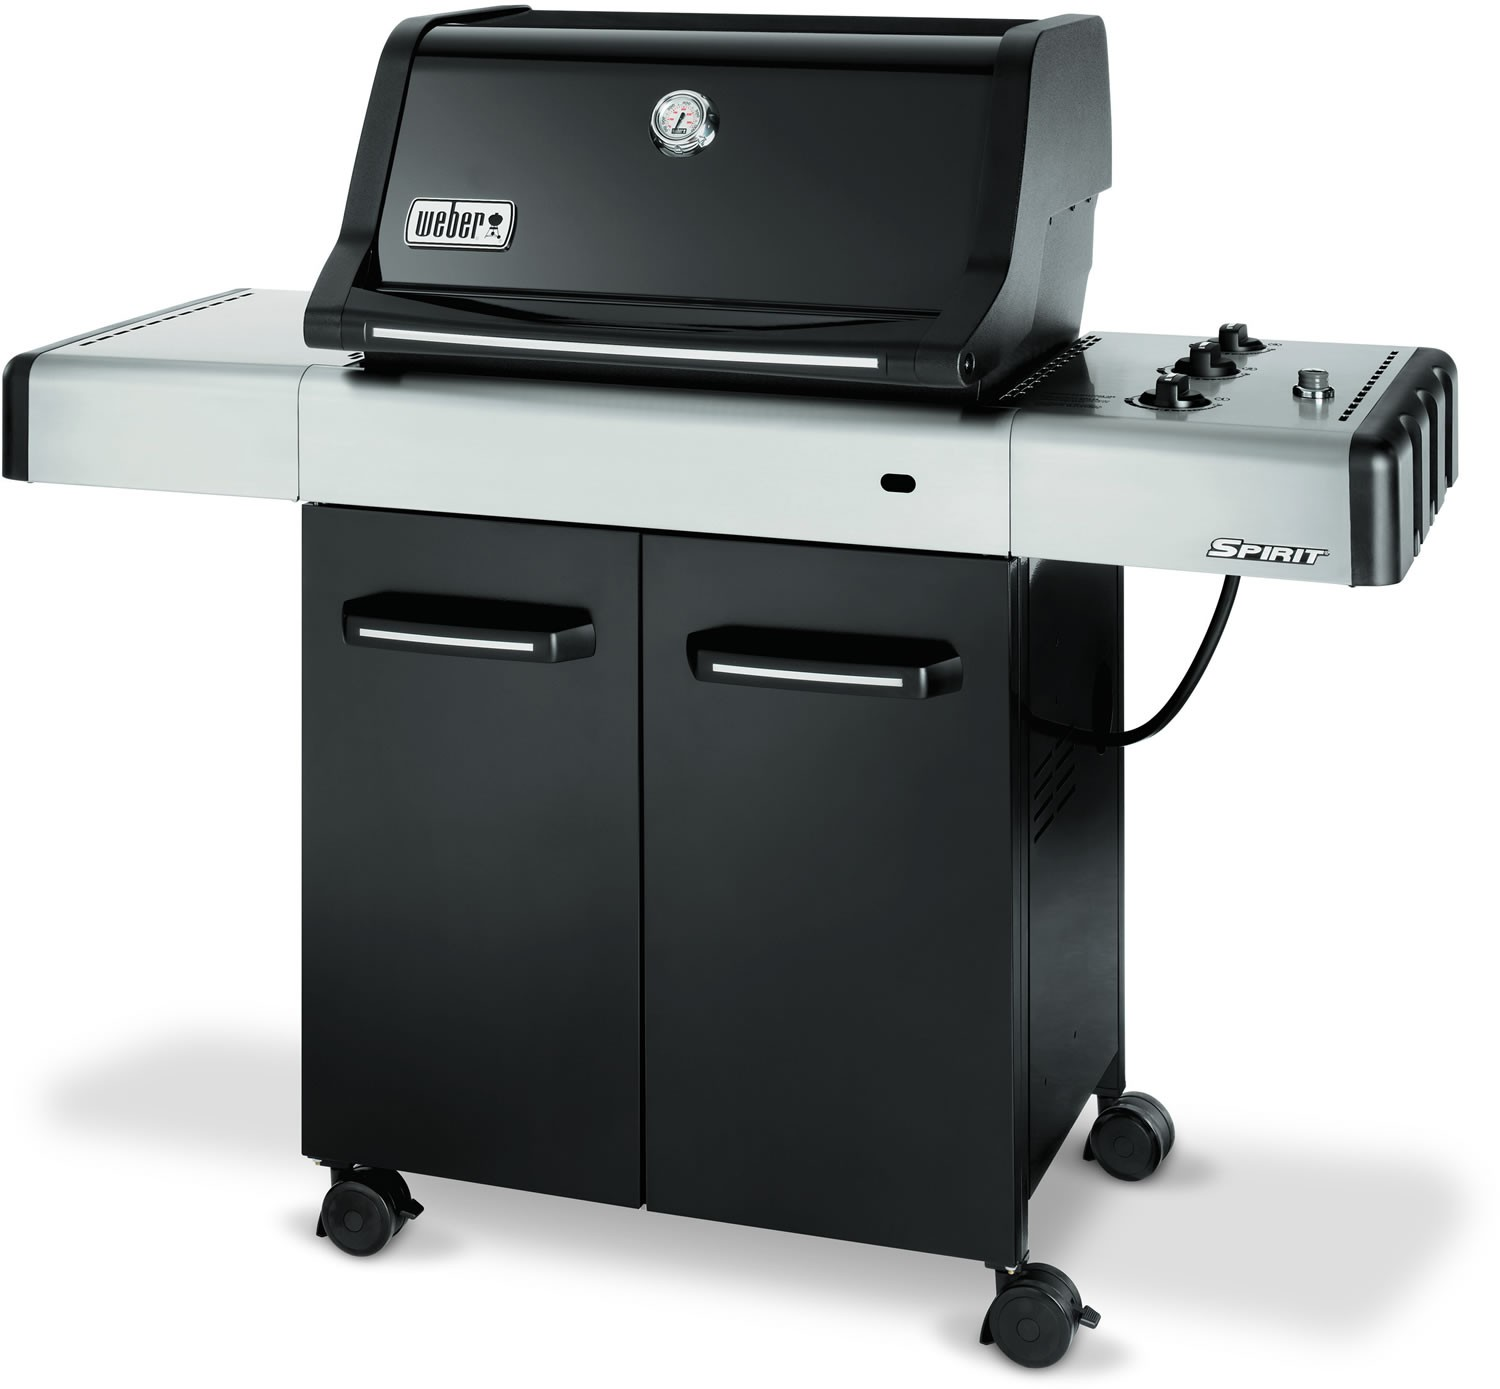 Weber gas grill spirit 3 burner e310 kitchenwarehub for Housse barbecue weber spirit